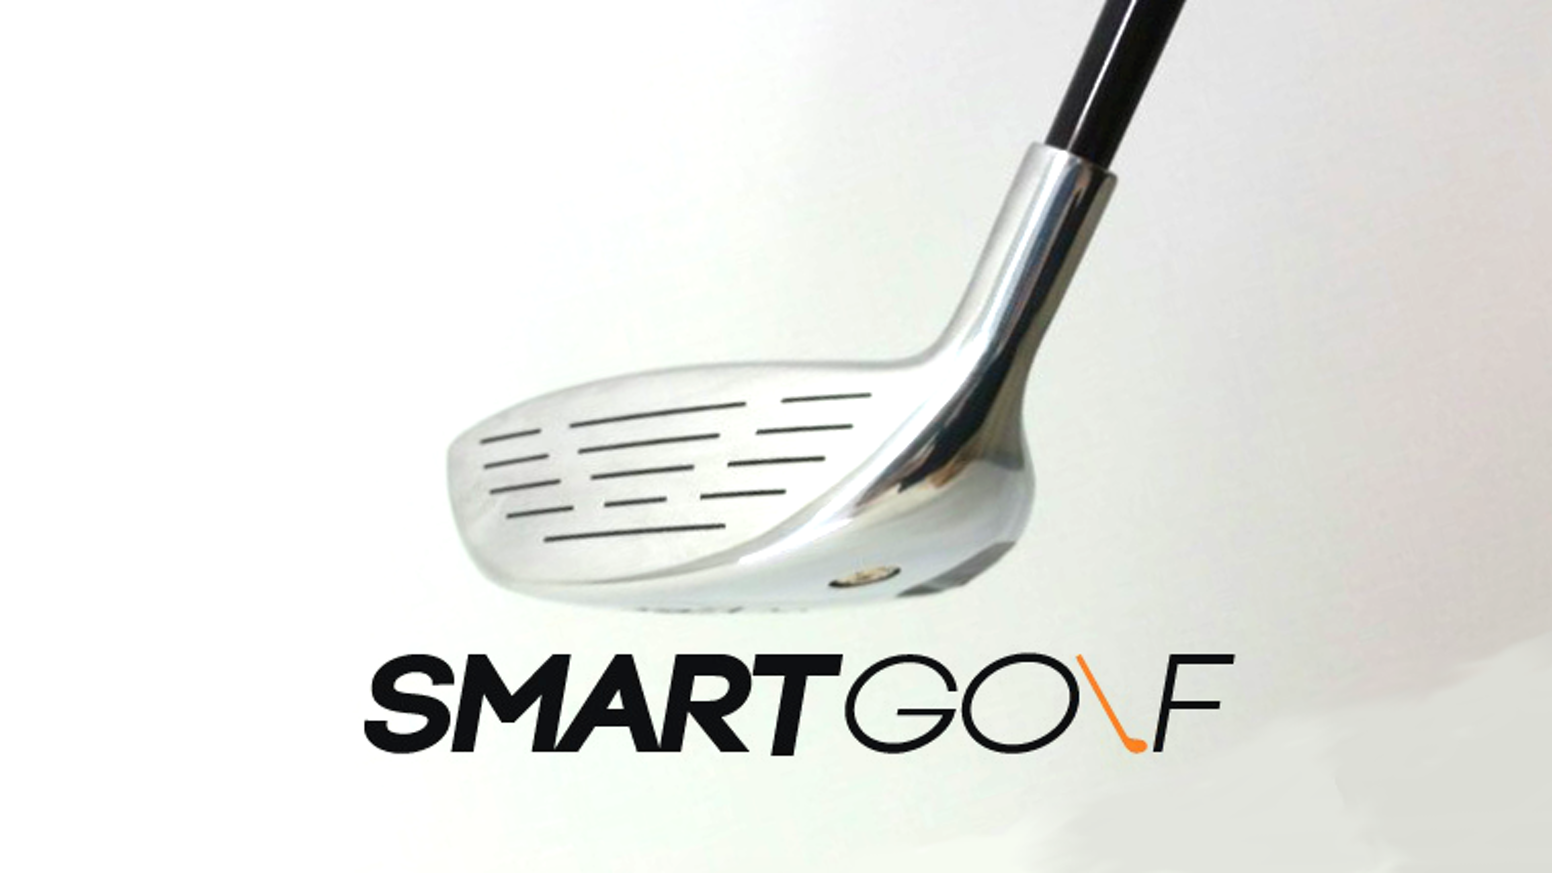 SMARTGOLF is a Wi-Fi compatible Smart Golf club, bringing you a realistic training and playing experience everywhere.